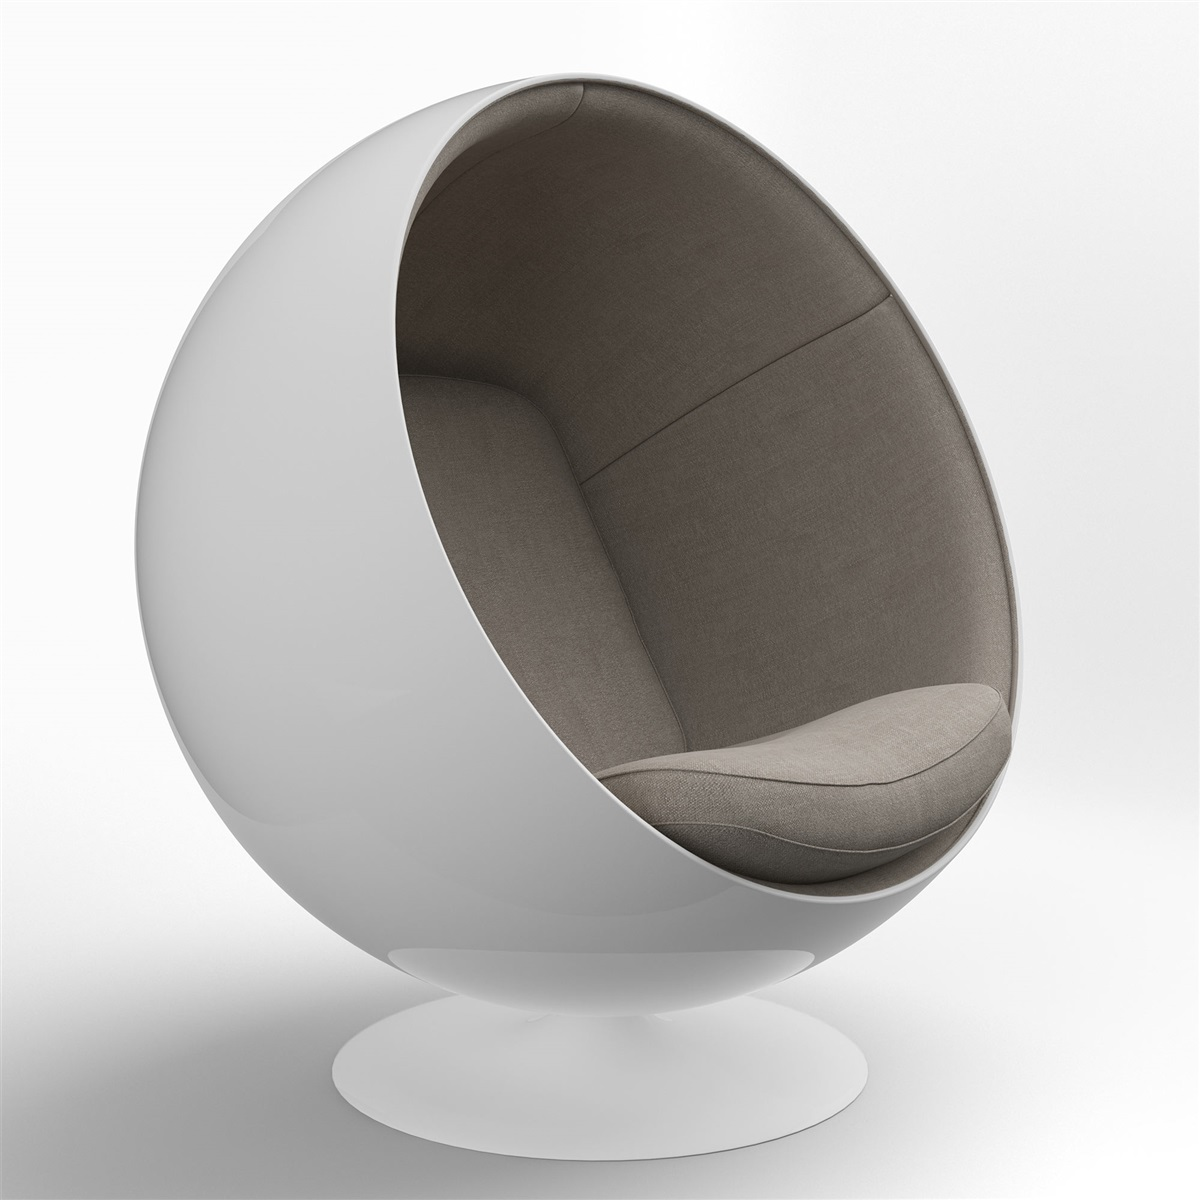 Exceptionnel Eero Aarnio Ball Chair